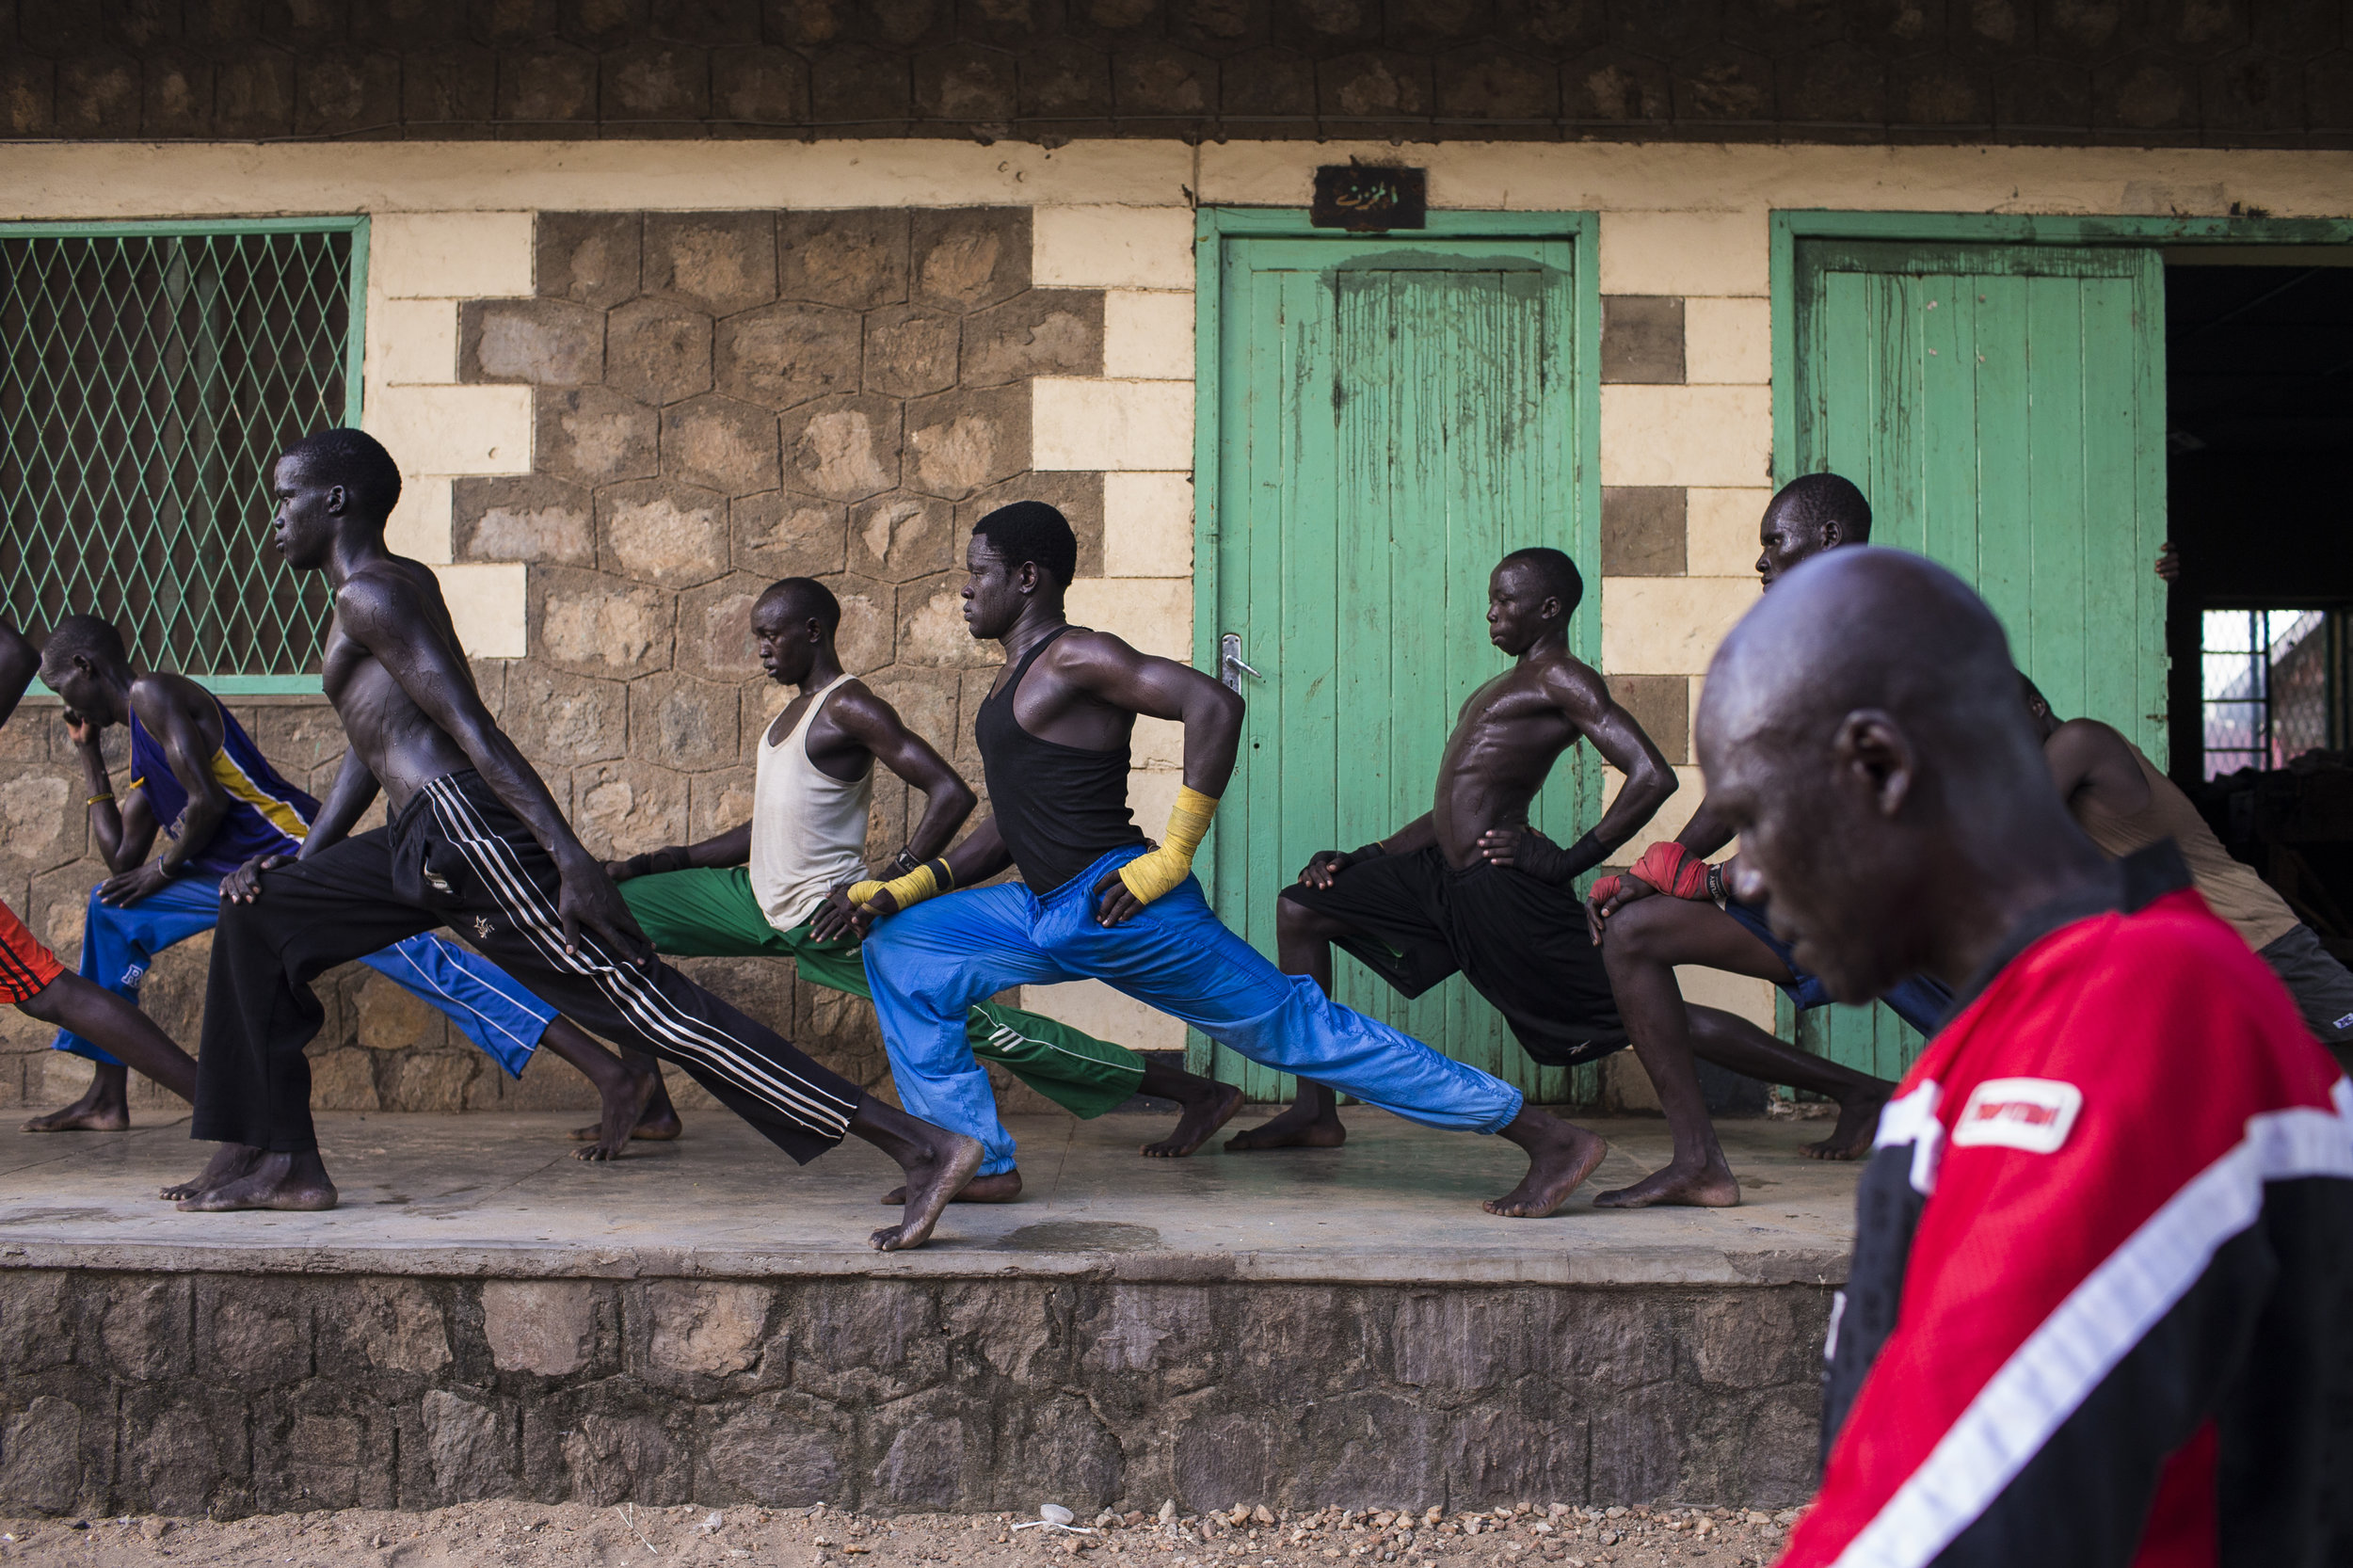 Team members stretch at the end of their day's training in Juba.